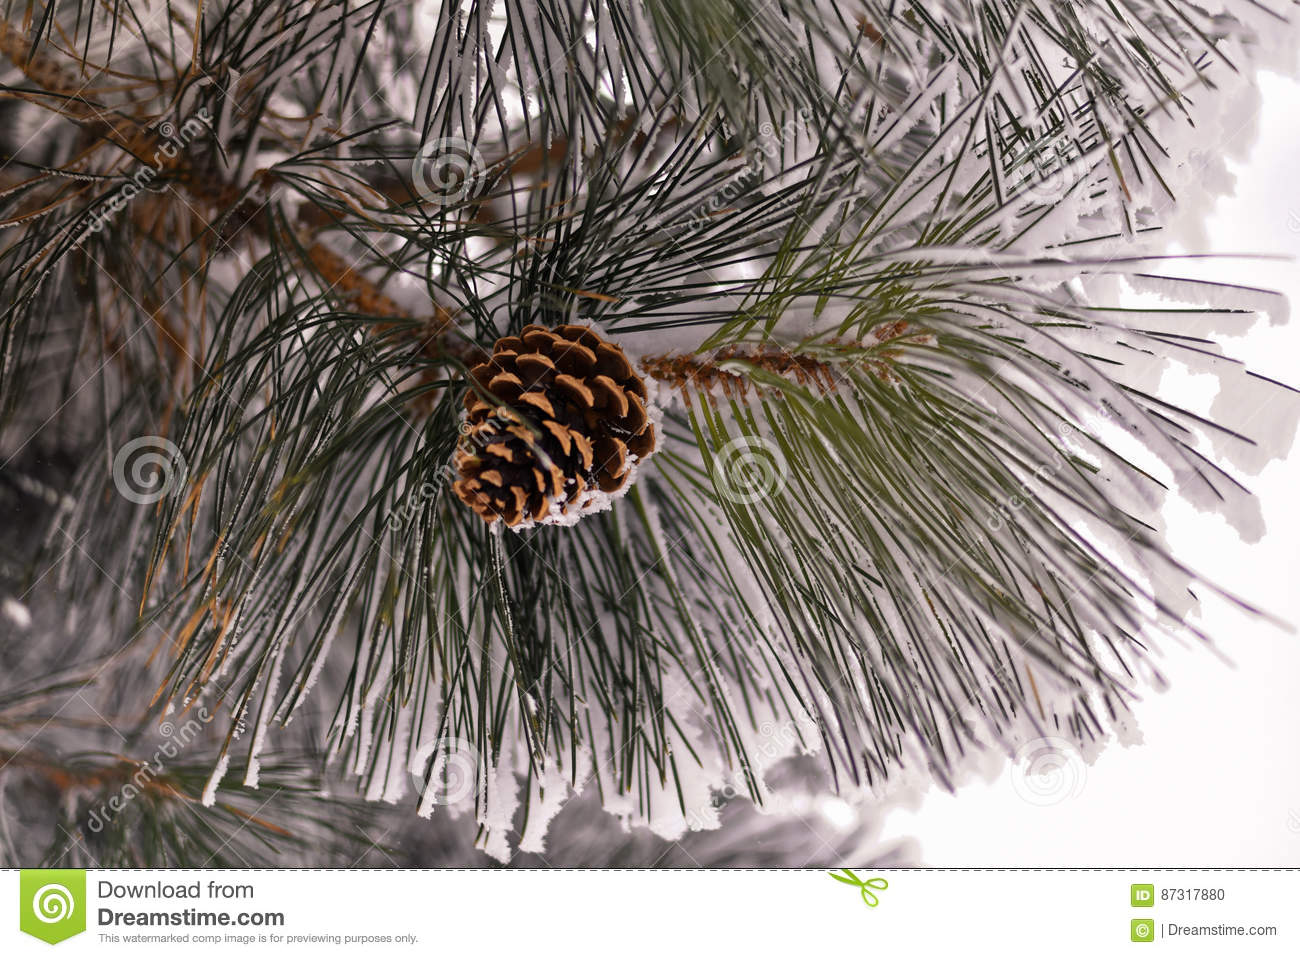 Closeup of a ponderosa pine tree cones on branches covered with frost and snow.